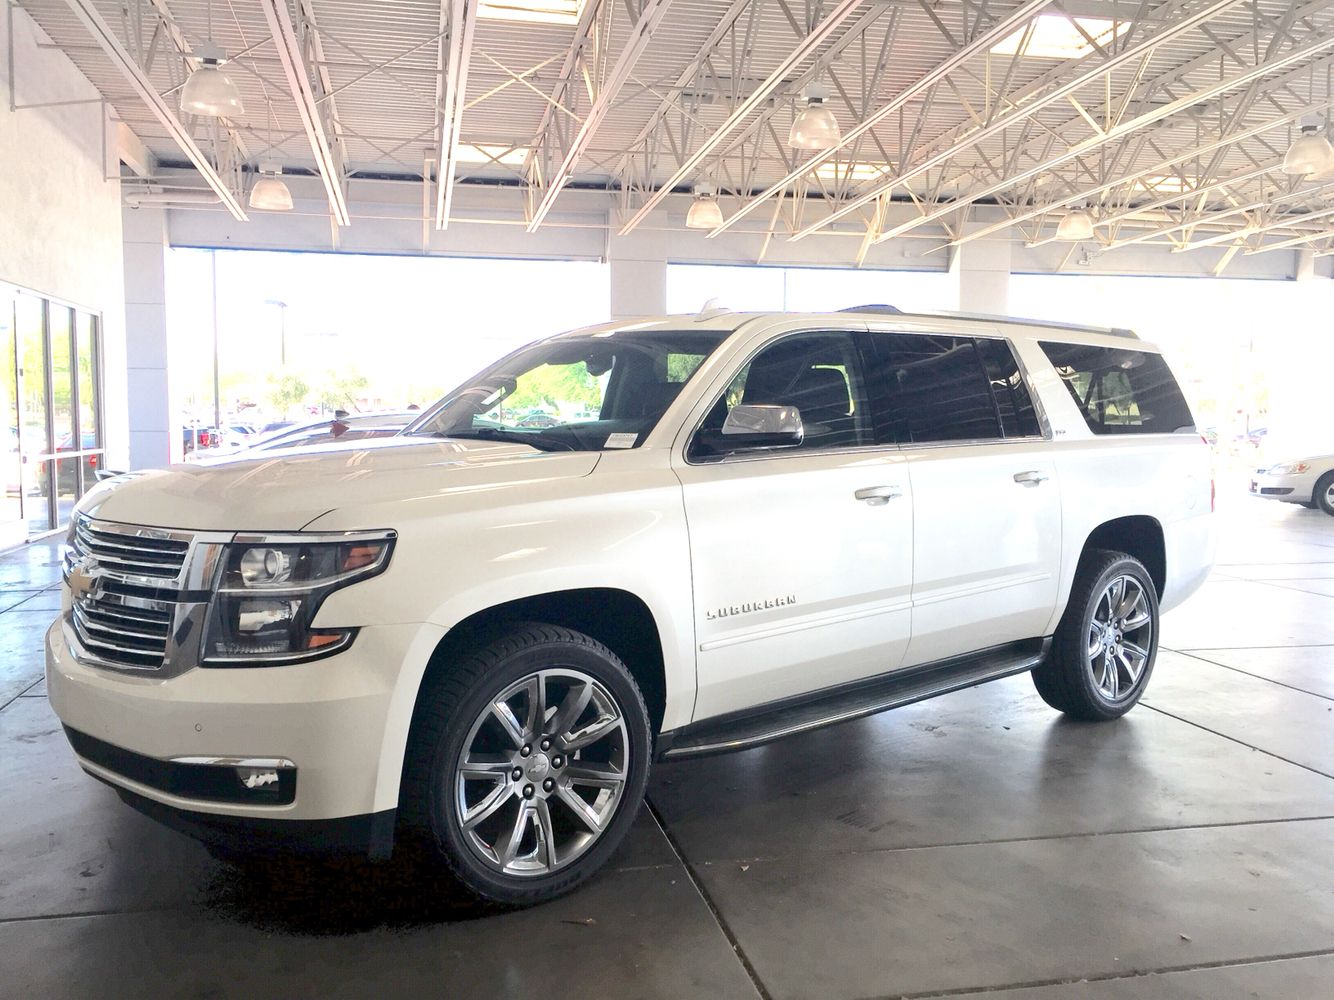 Beautiful perfect 2015 chevy suburban ltz some girls dream of luxury sports cars